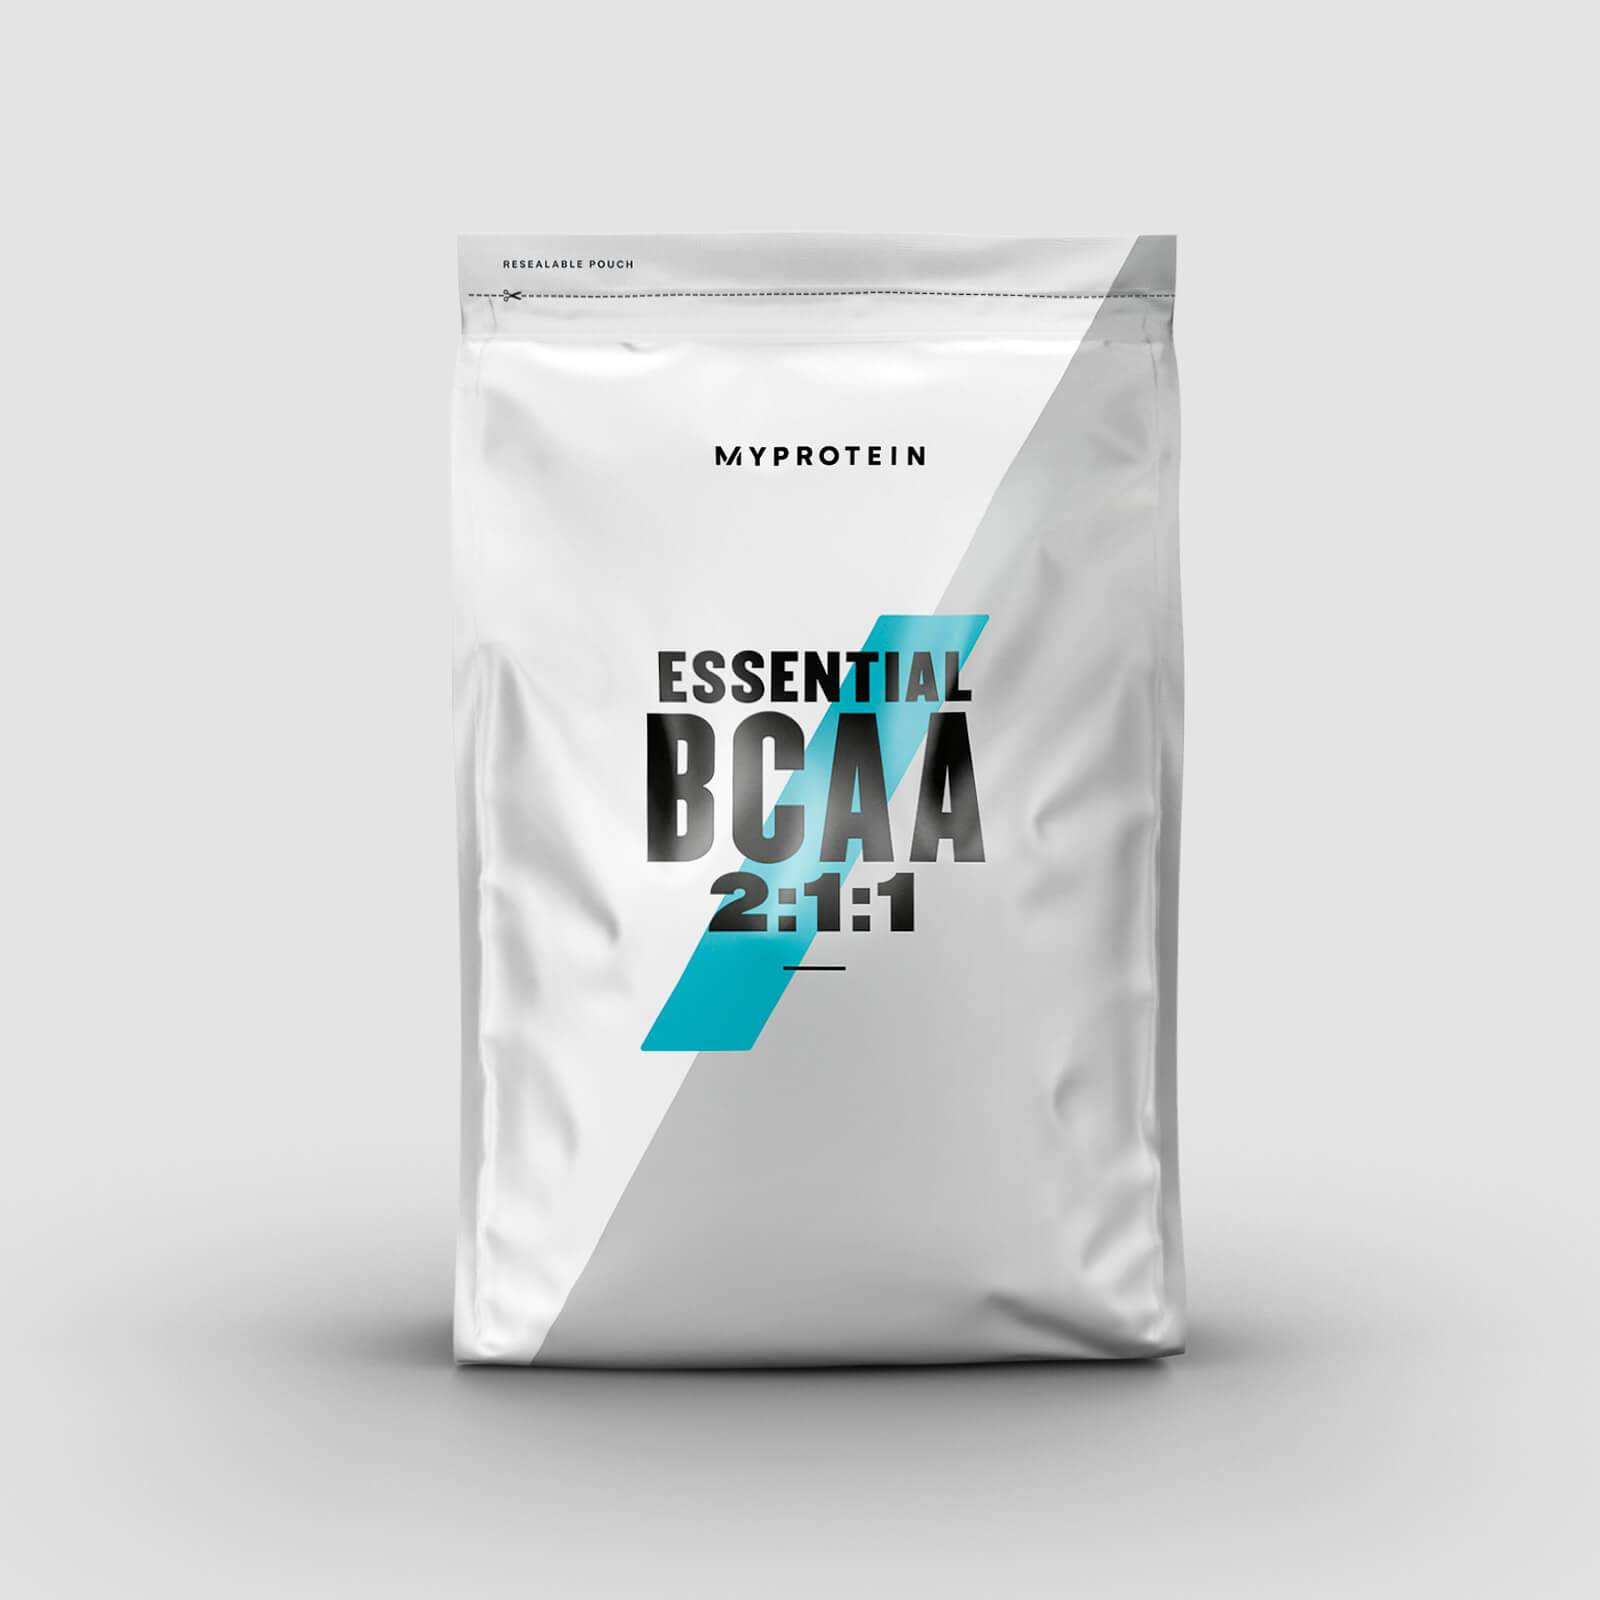 Myprotein Essential BCAA 2:1:1 Powder - 250g - Gin and Tonic